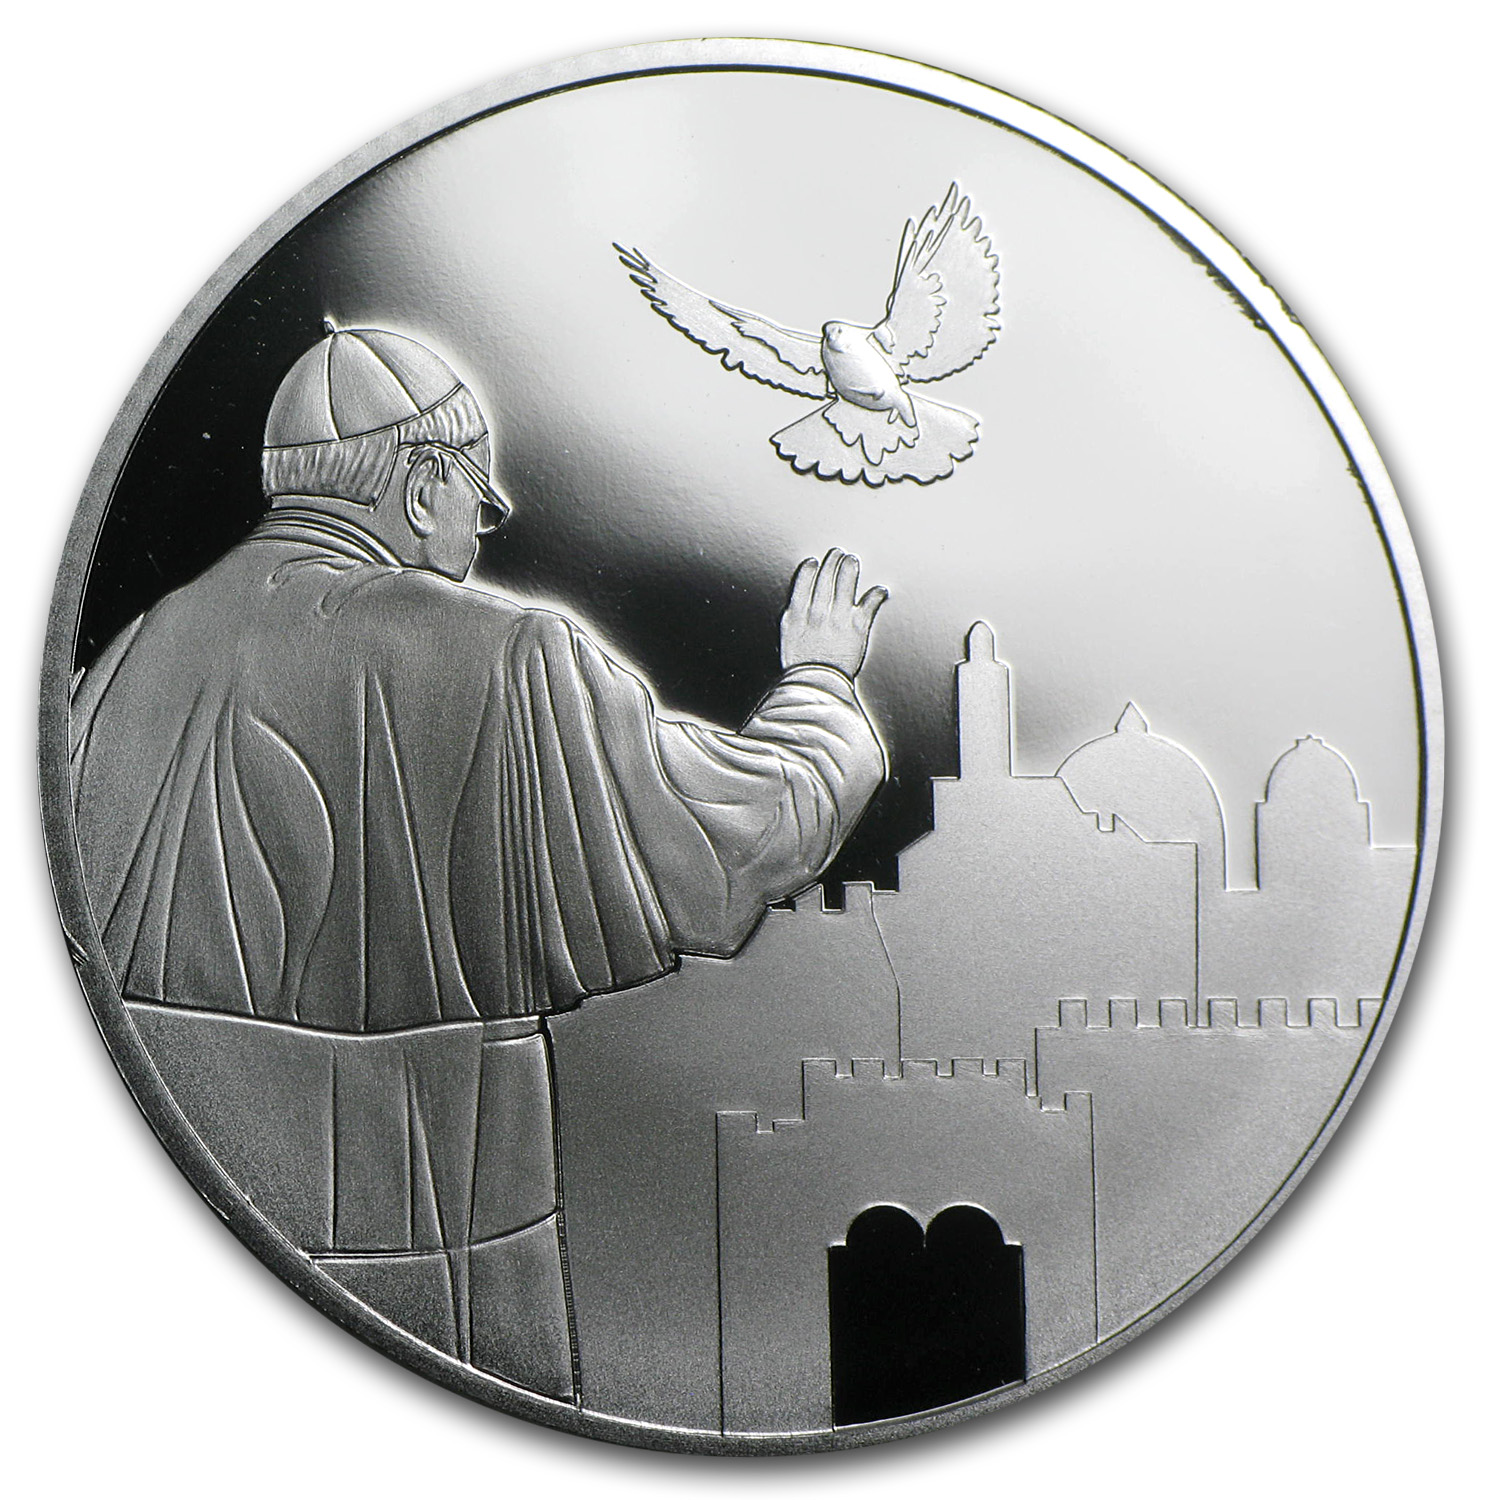 2014 1 oz Silver Rnd - Pope Francis Visit to the Holy Land